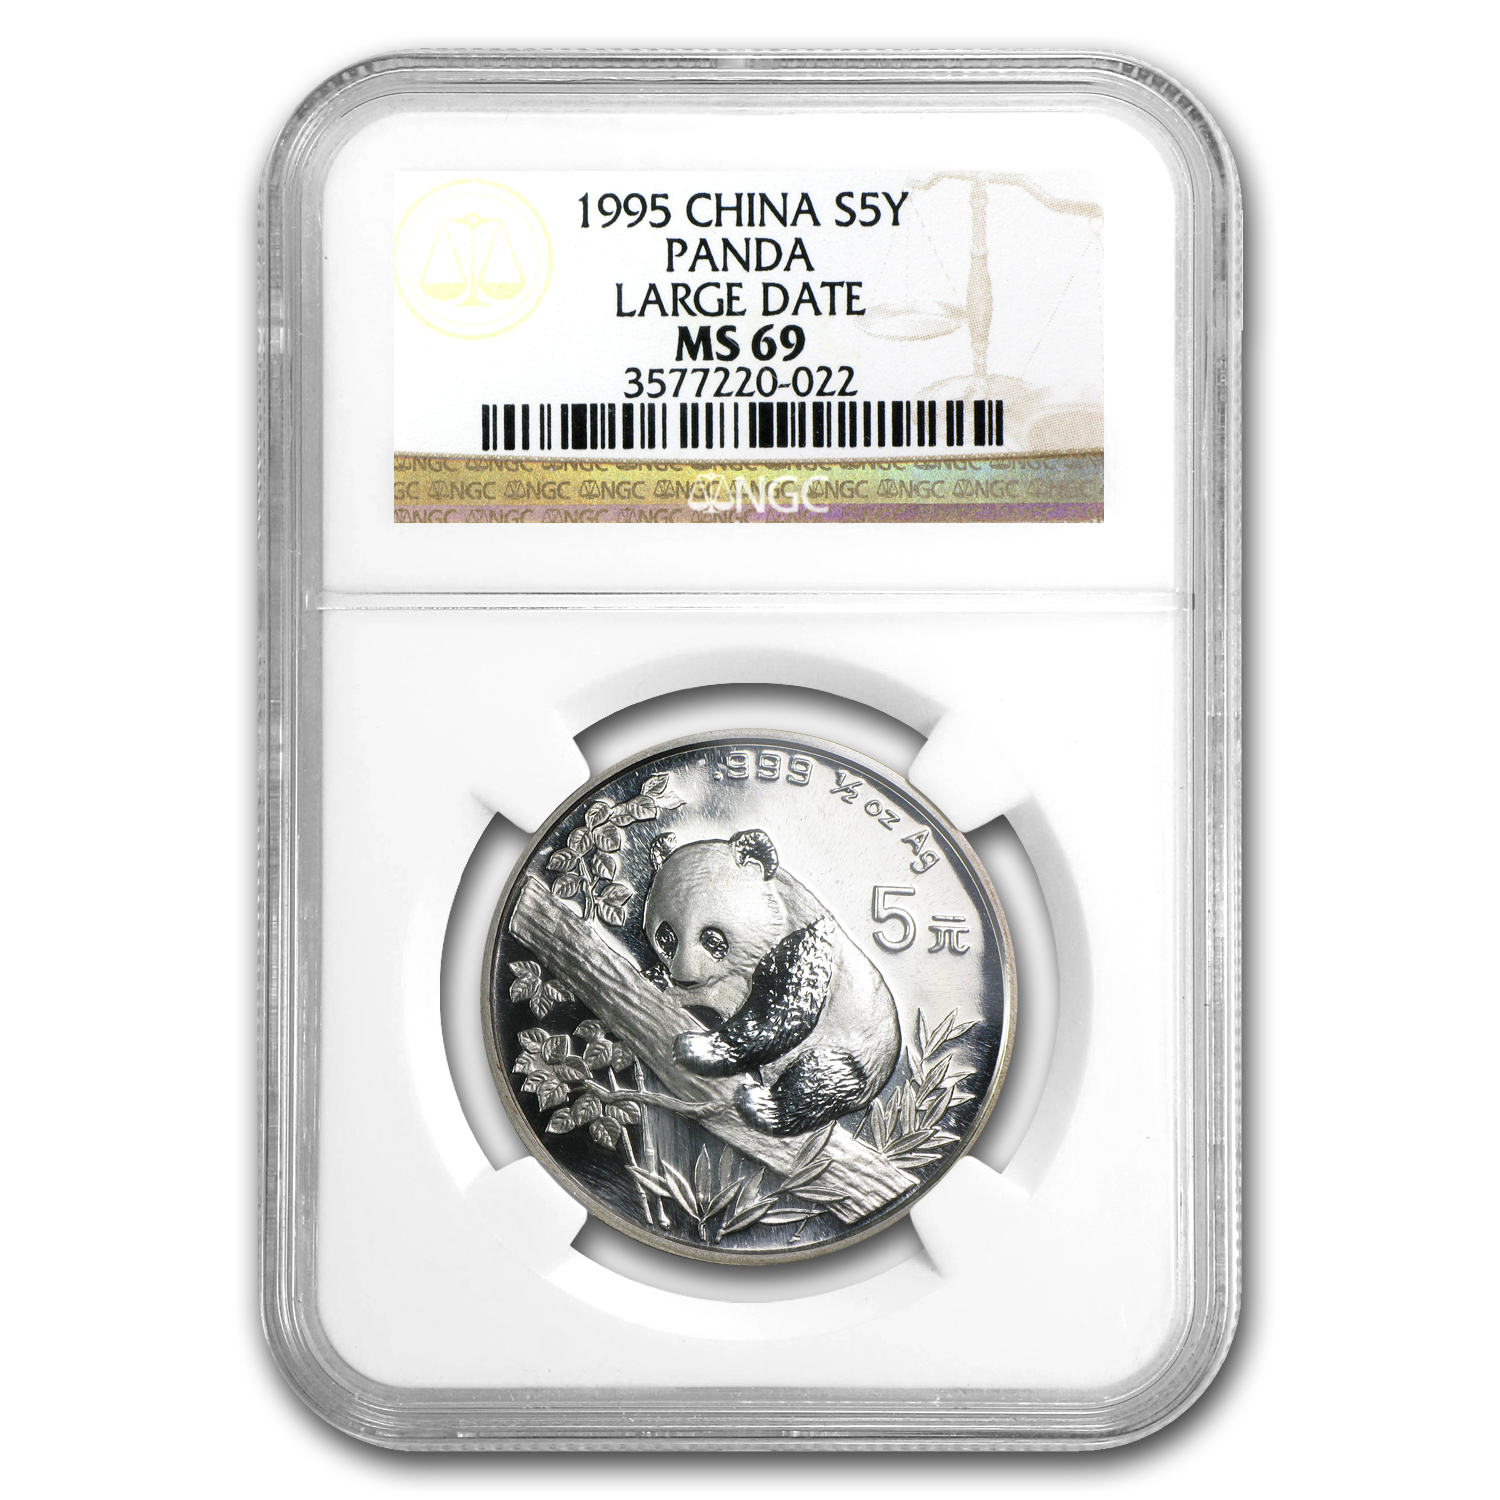 1995 China 1/2 oz Silver Panda MS-69 NGC (Large Date)